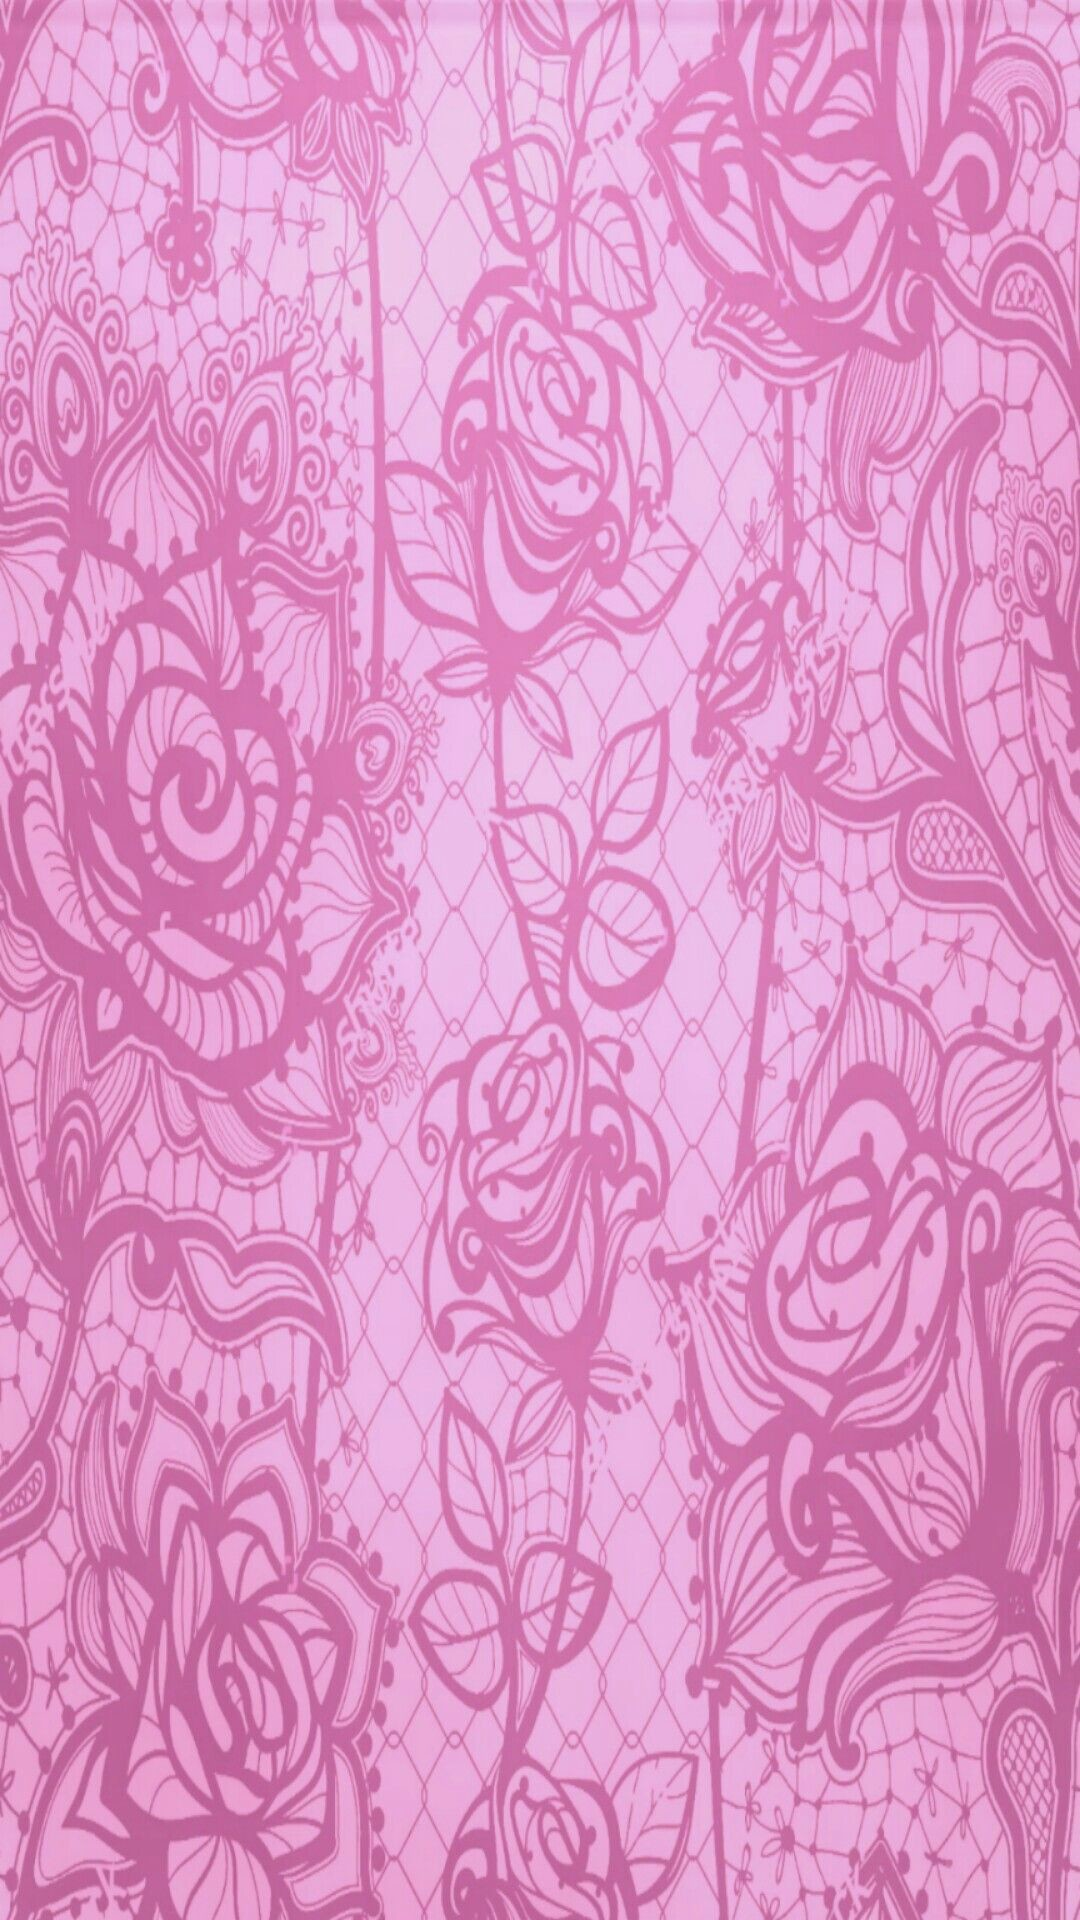 Res: 1080x1920, Light pink lace